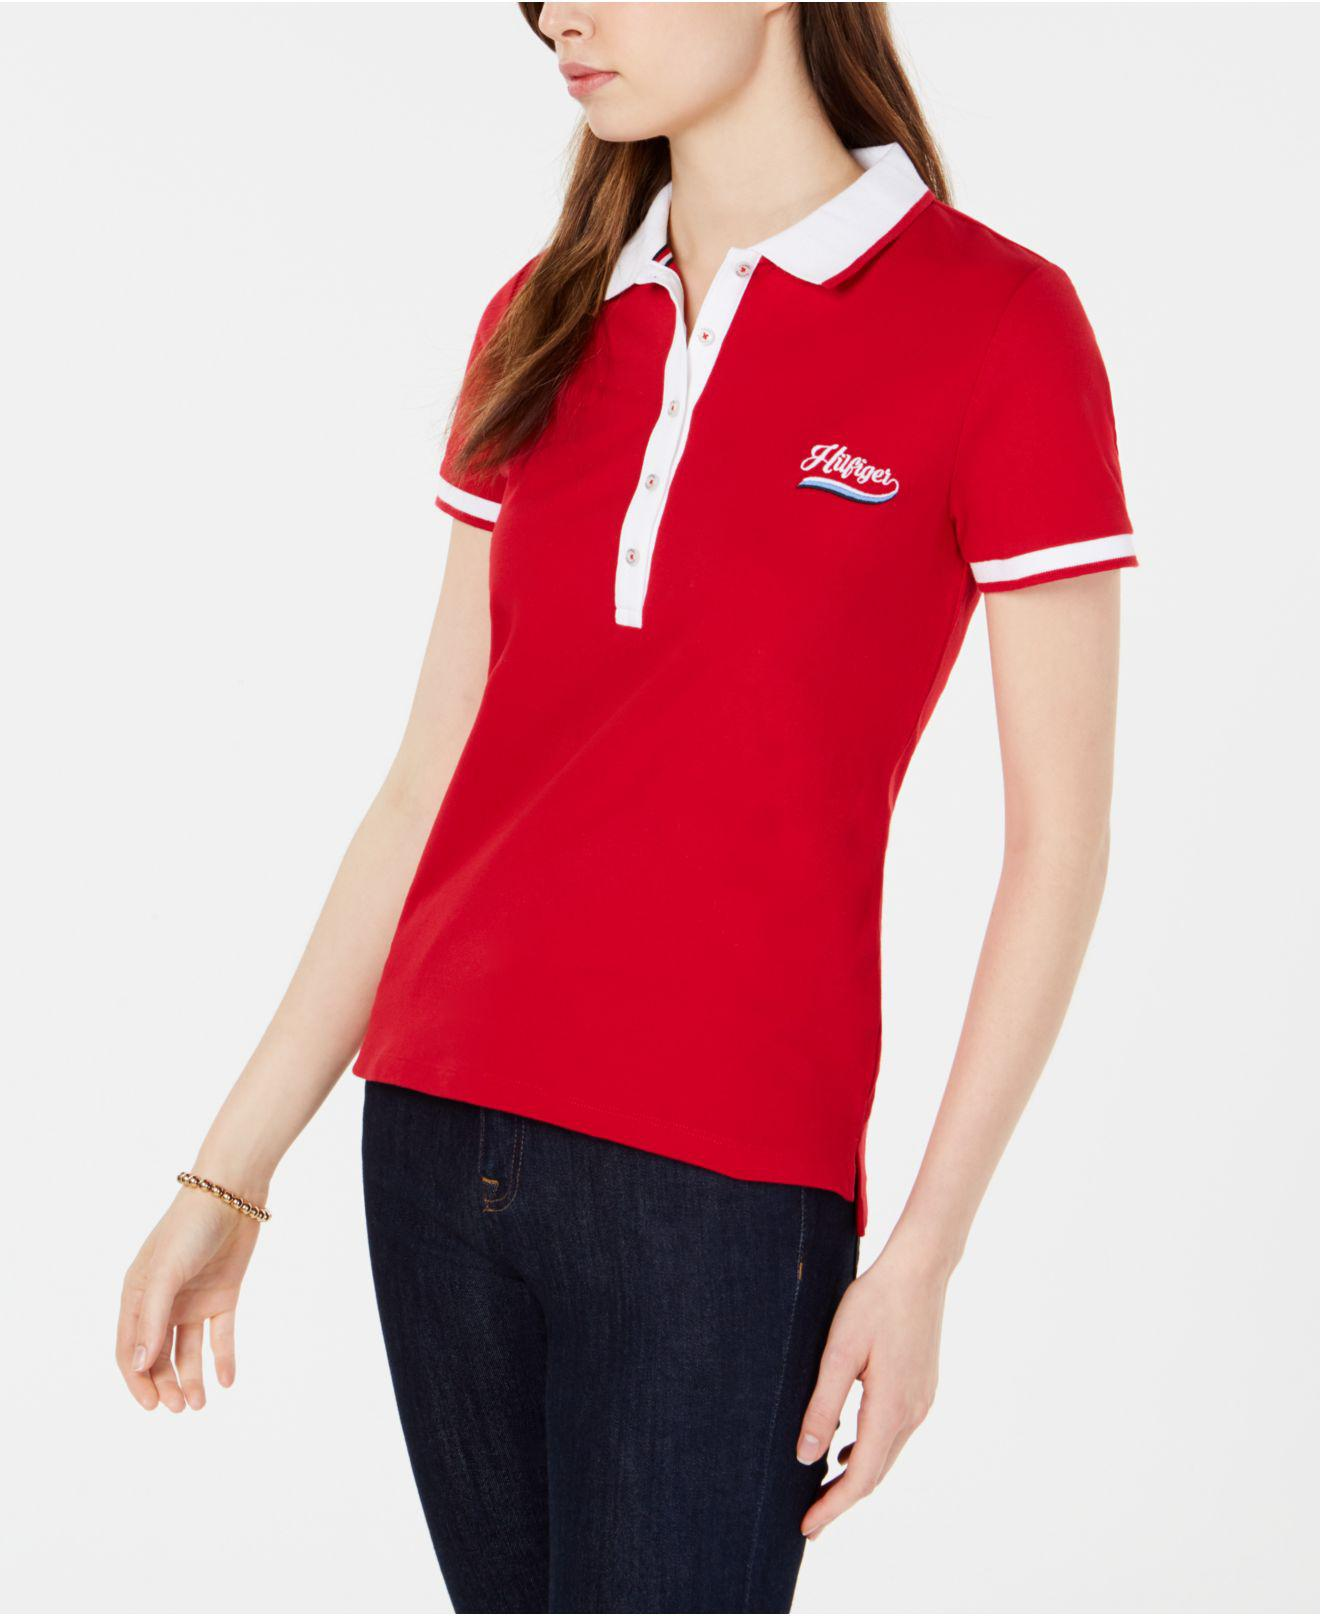 31eec8c797ff3 Tommy Hilfiger. Women s Embroidered Logo Polo Top ...